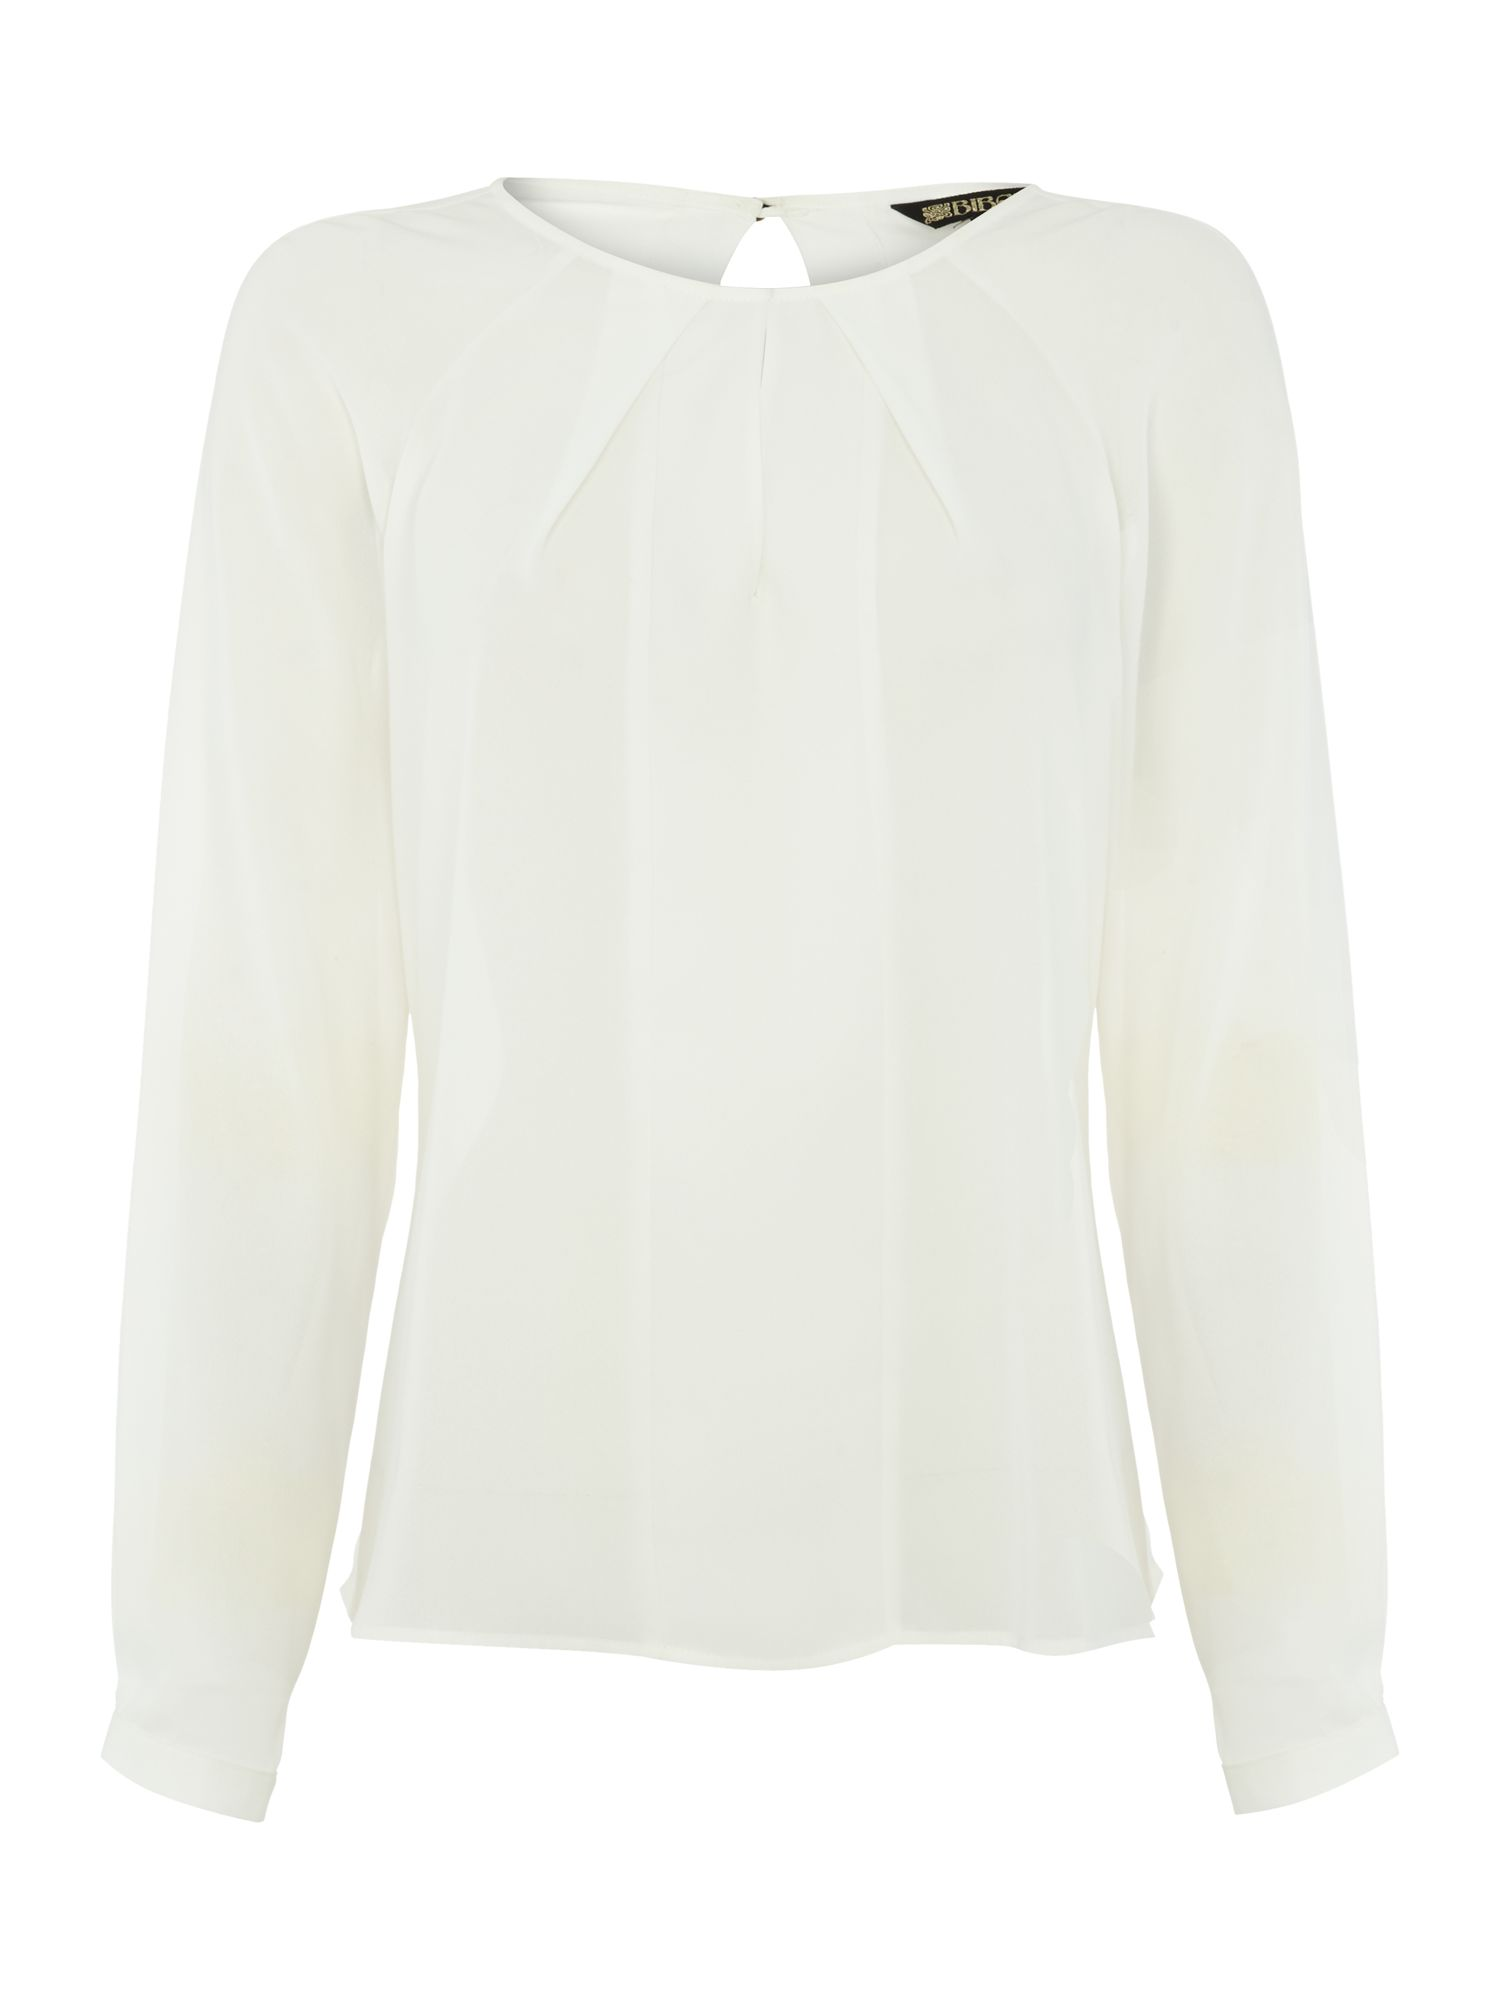 Plain draped blouse with metal logo buttons